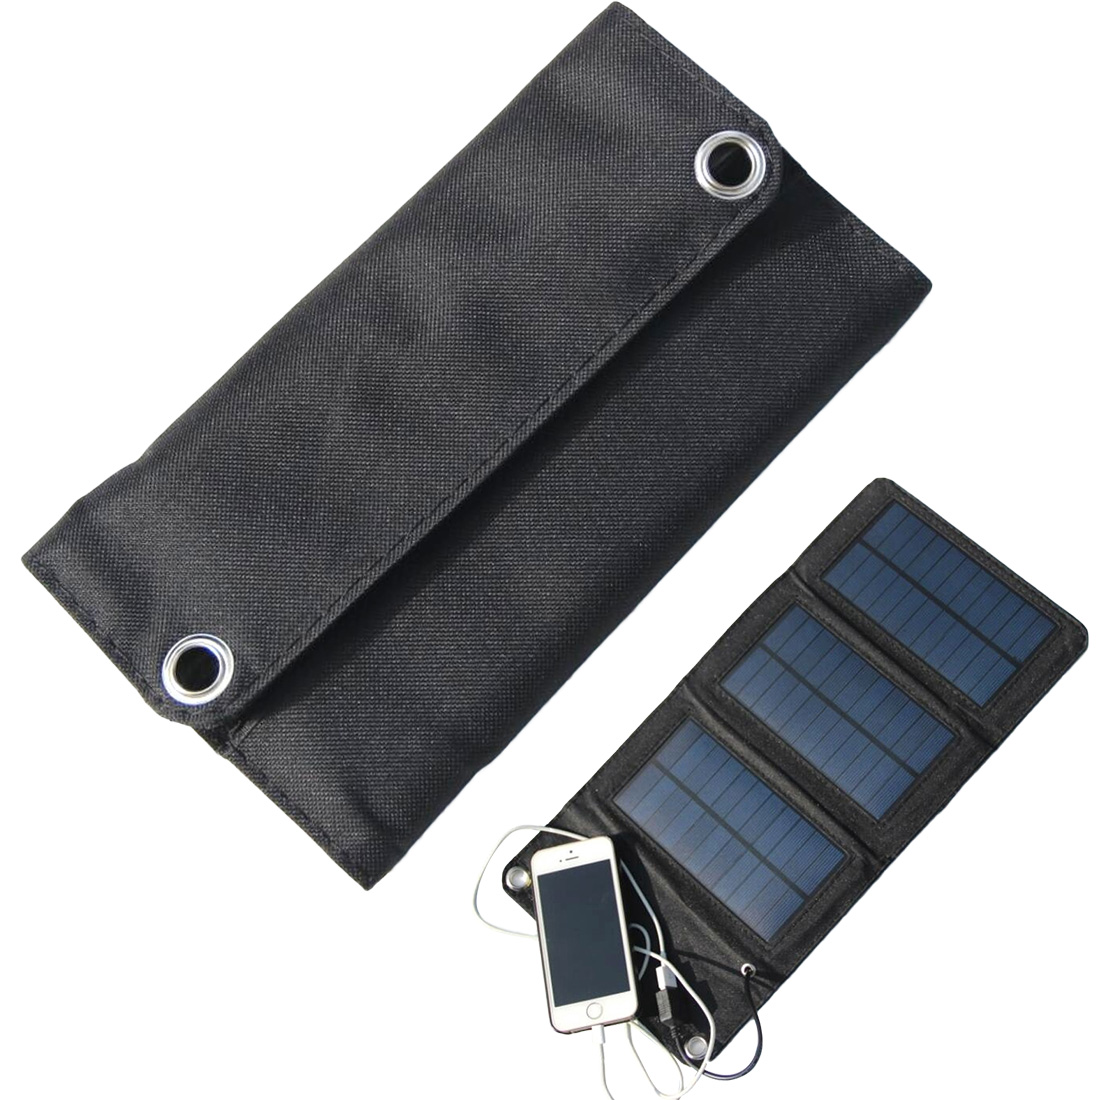 5W 5V Portable Solar Panel Mobile phone Charger DIY Polysilicon Foldable Solar USB Battery Chargers Solar Power Bank Charger щипцы philips bhs677 00